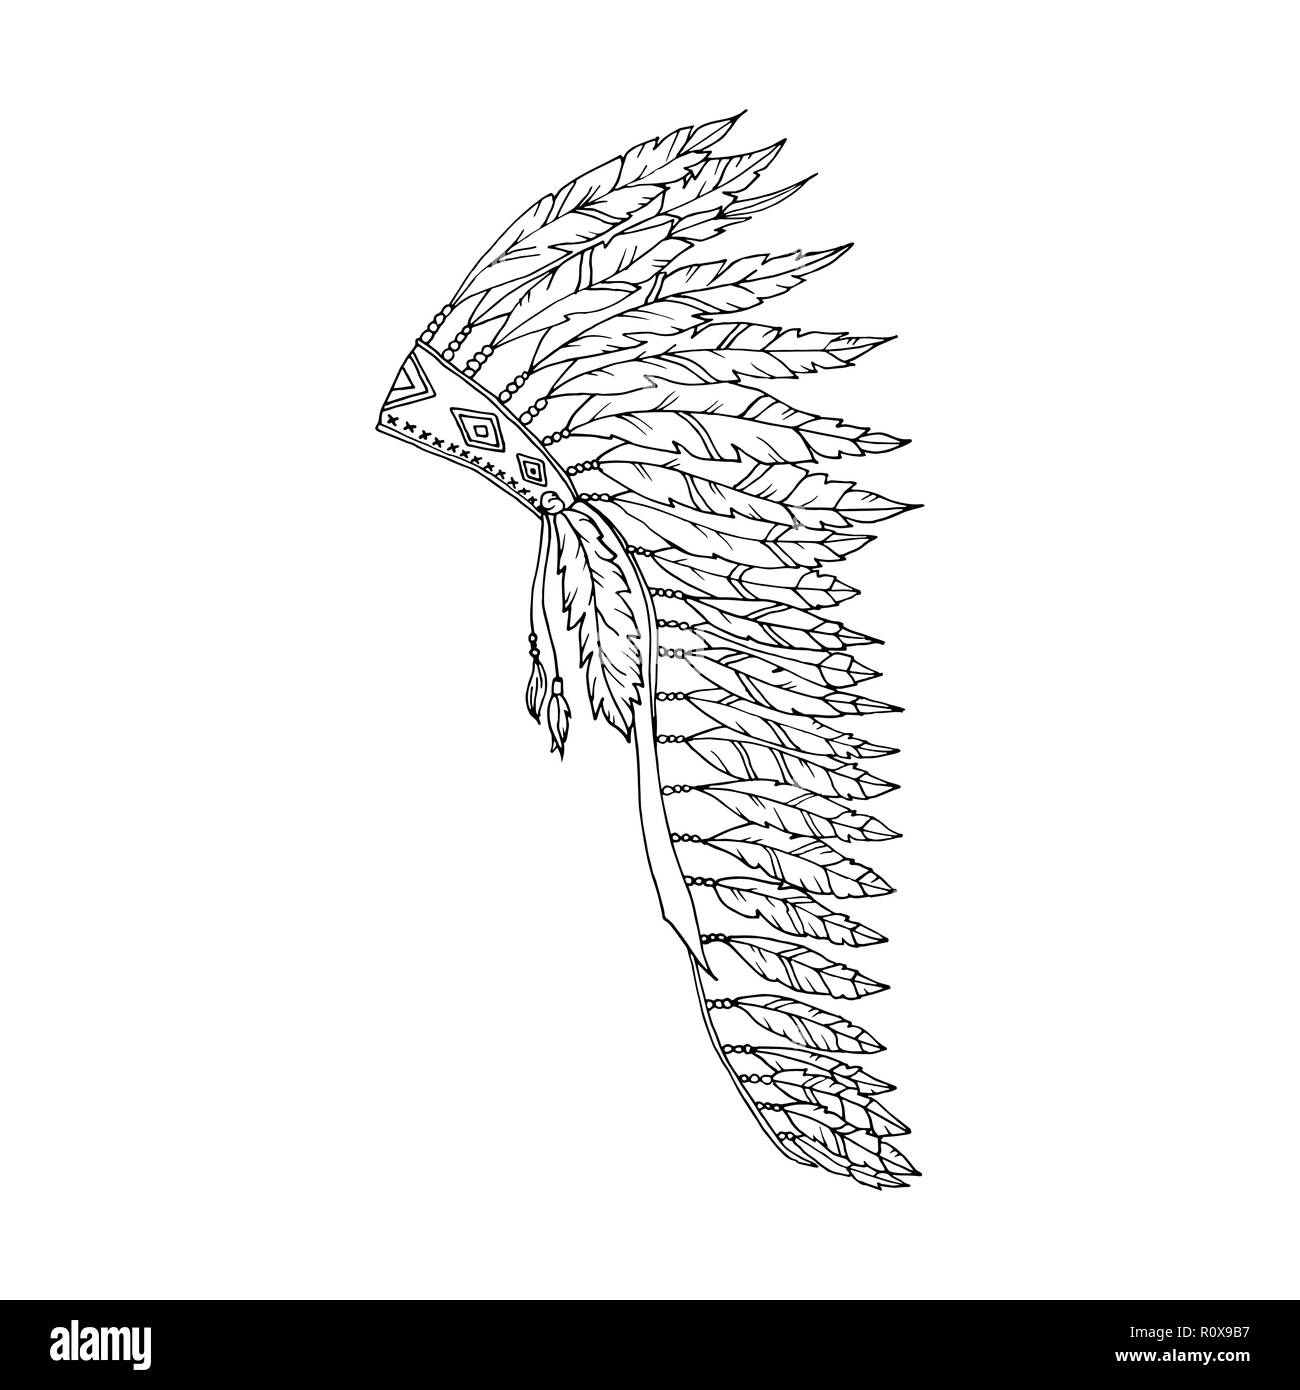 American Warbonnet Outline Drawing. Eagle Feather hat coloring page fashion accessory. Native Indian Headdress. Thanksgiving and Halloween Vector Costume Illustration. - Stock Image